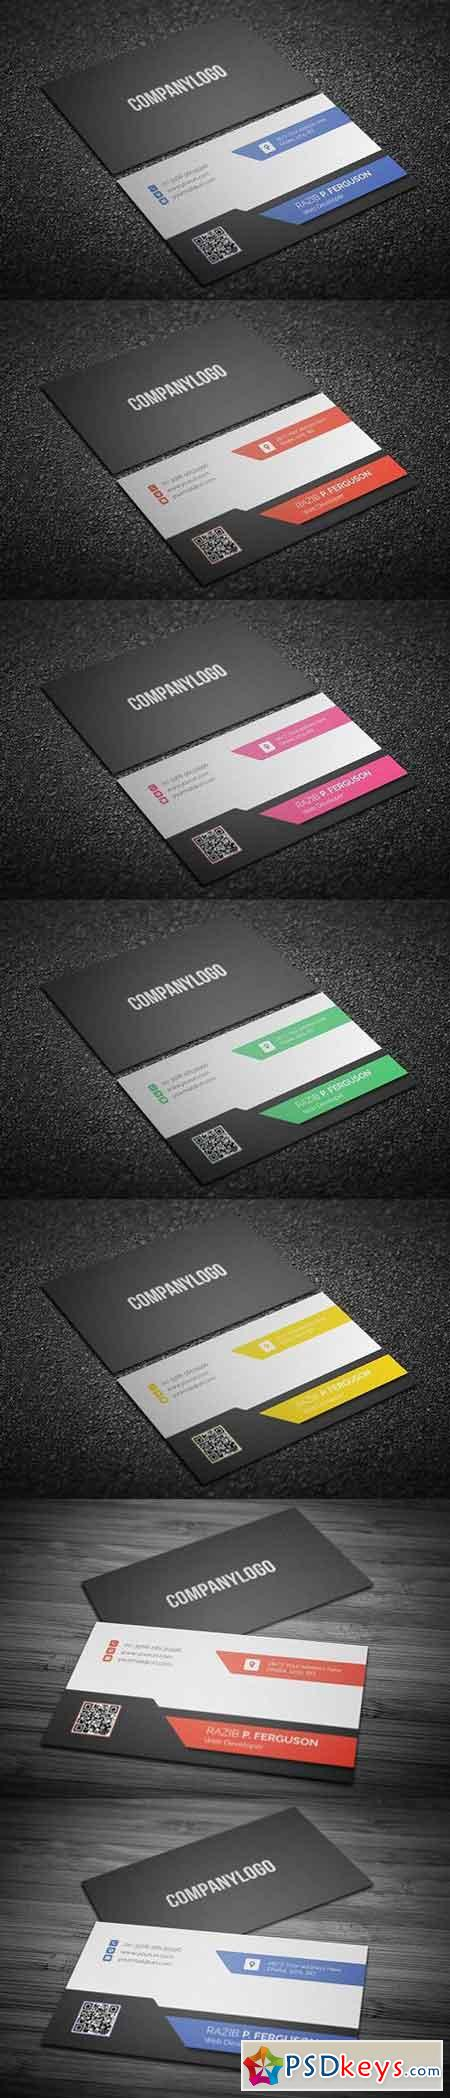 Corporate Business Card Free Download shop